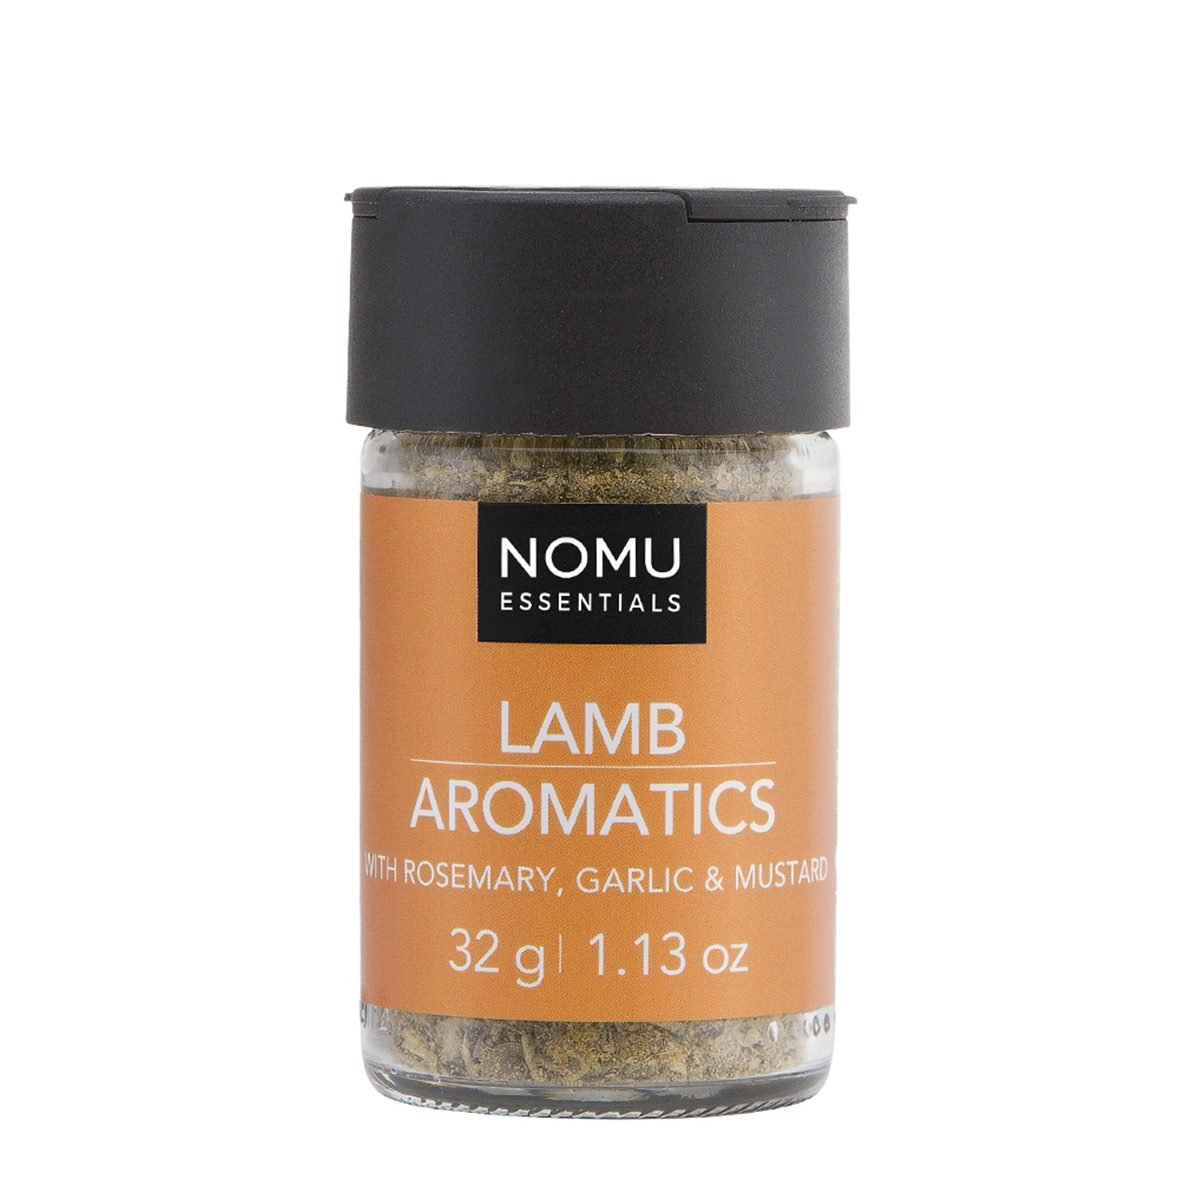 Lamb-Aromatics